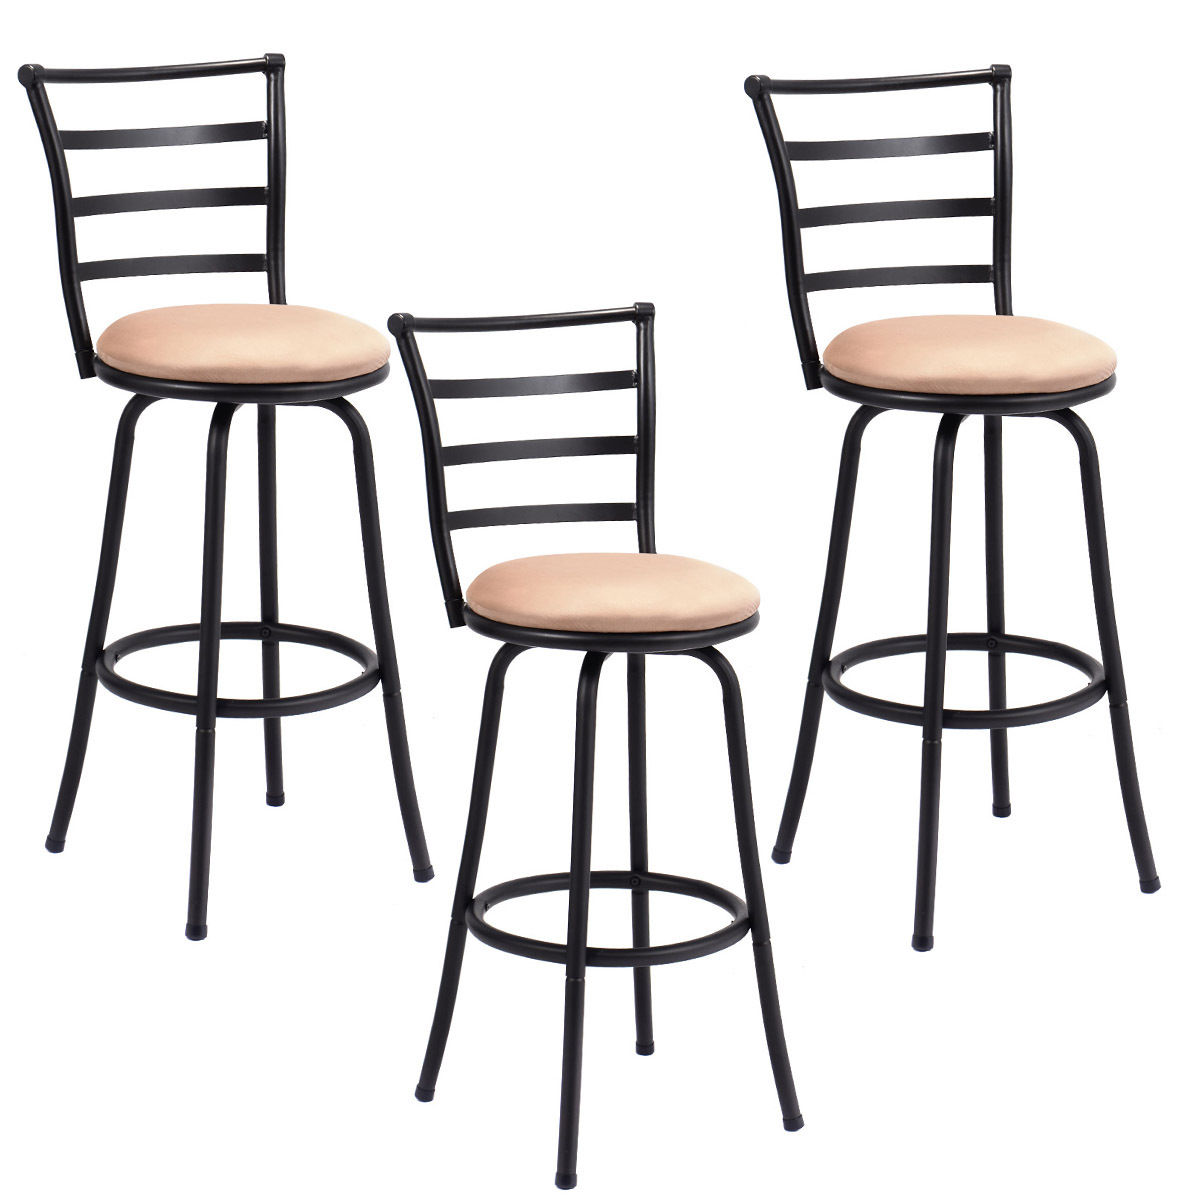 Costway Set Of 3 Swivel Bar Stools Steel Frame Counter Height Modern  Barstool Pub Chairs